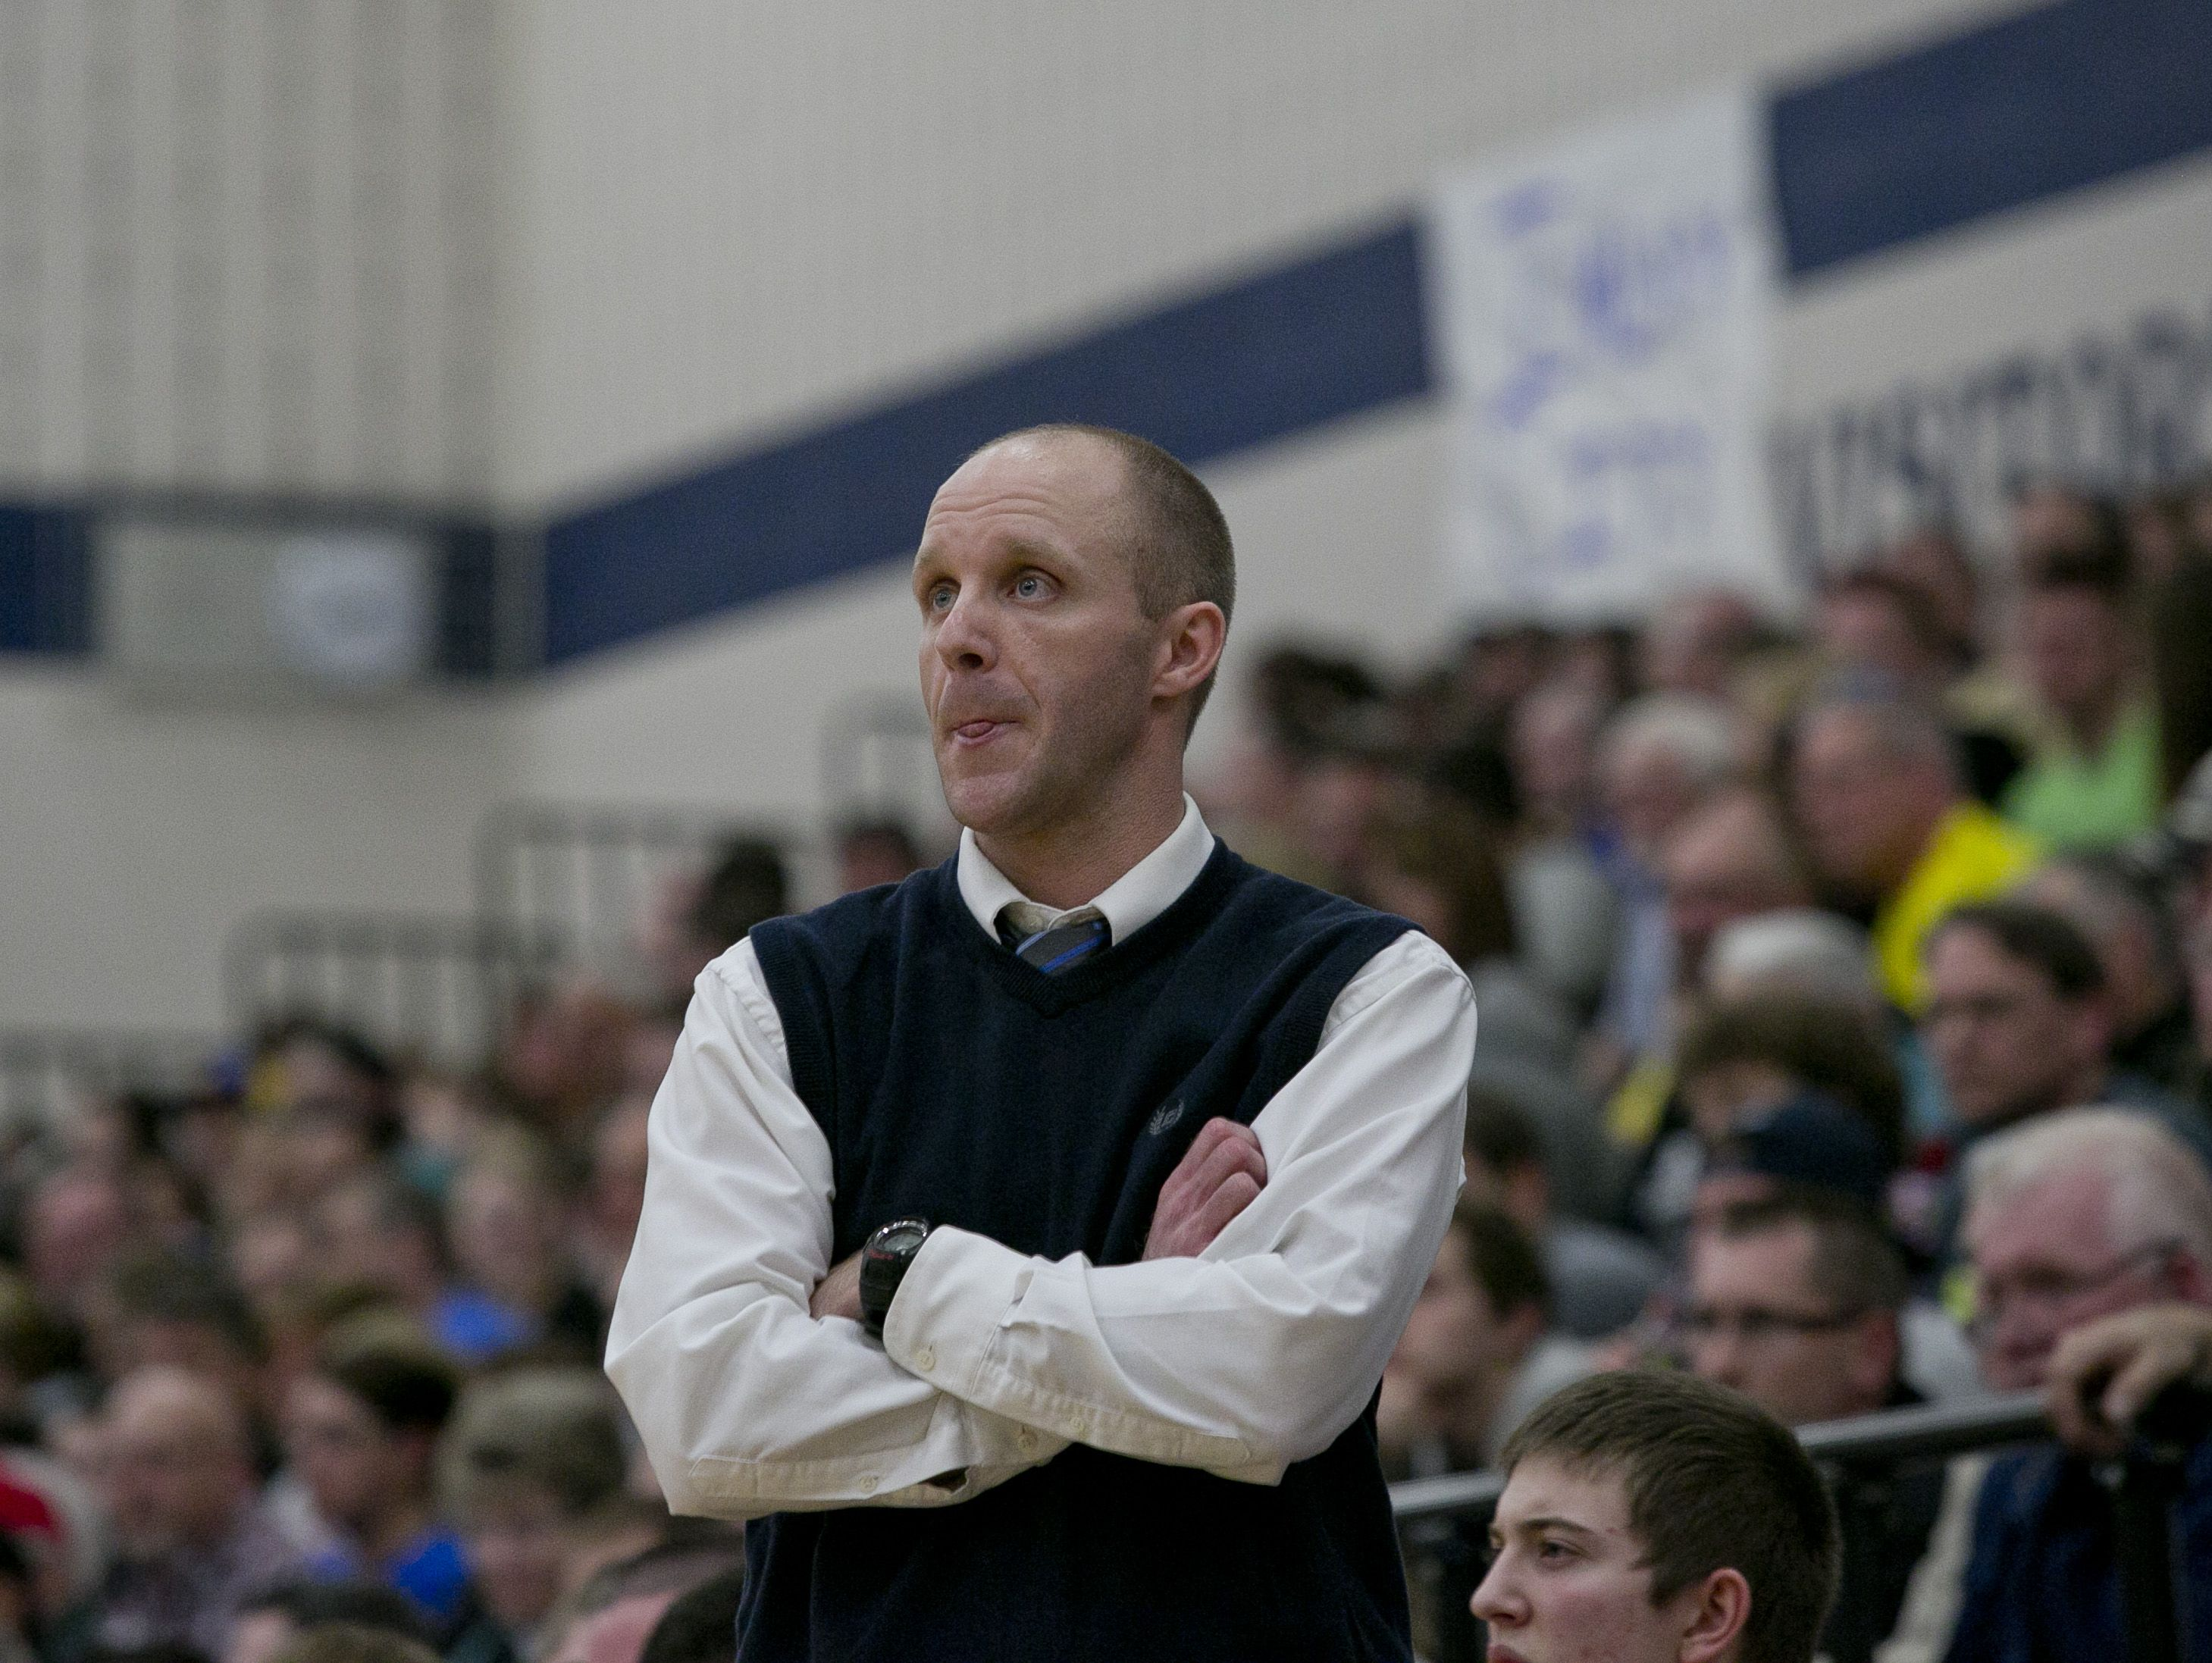 Yale coach Garnett Kohler bites his tongue as he watches the action from the sidelines during a Class B district basketball game Friday, March 13, 2015 at Richmond High School. Yale beat Imlay City 59-43.